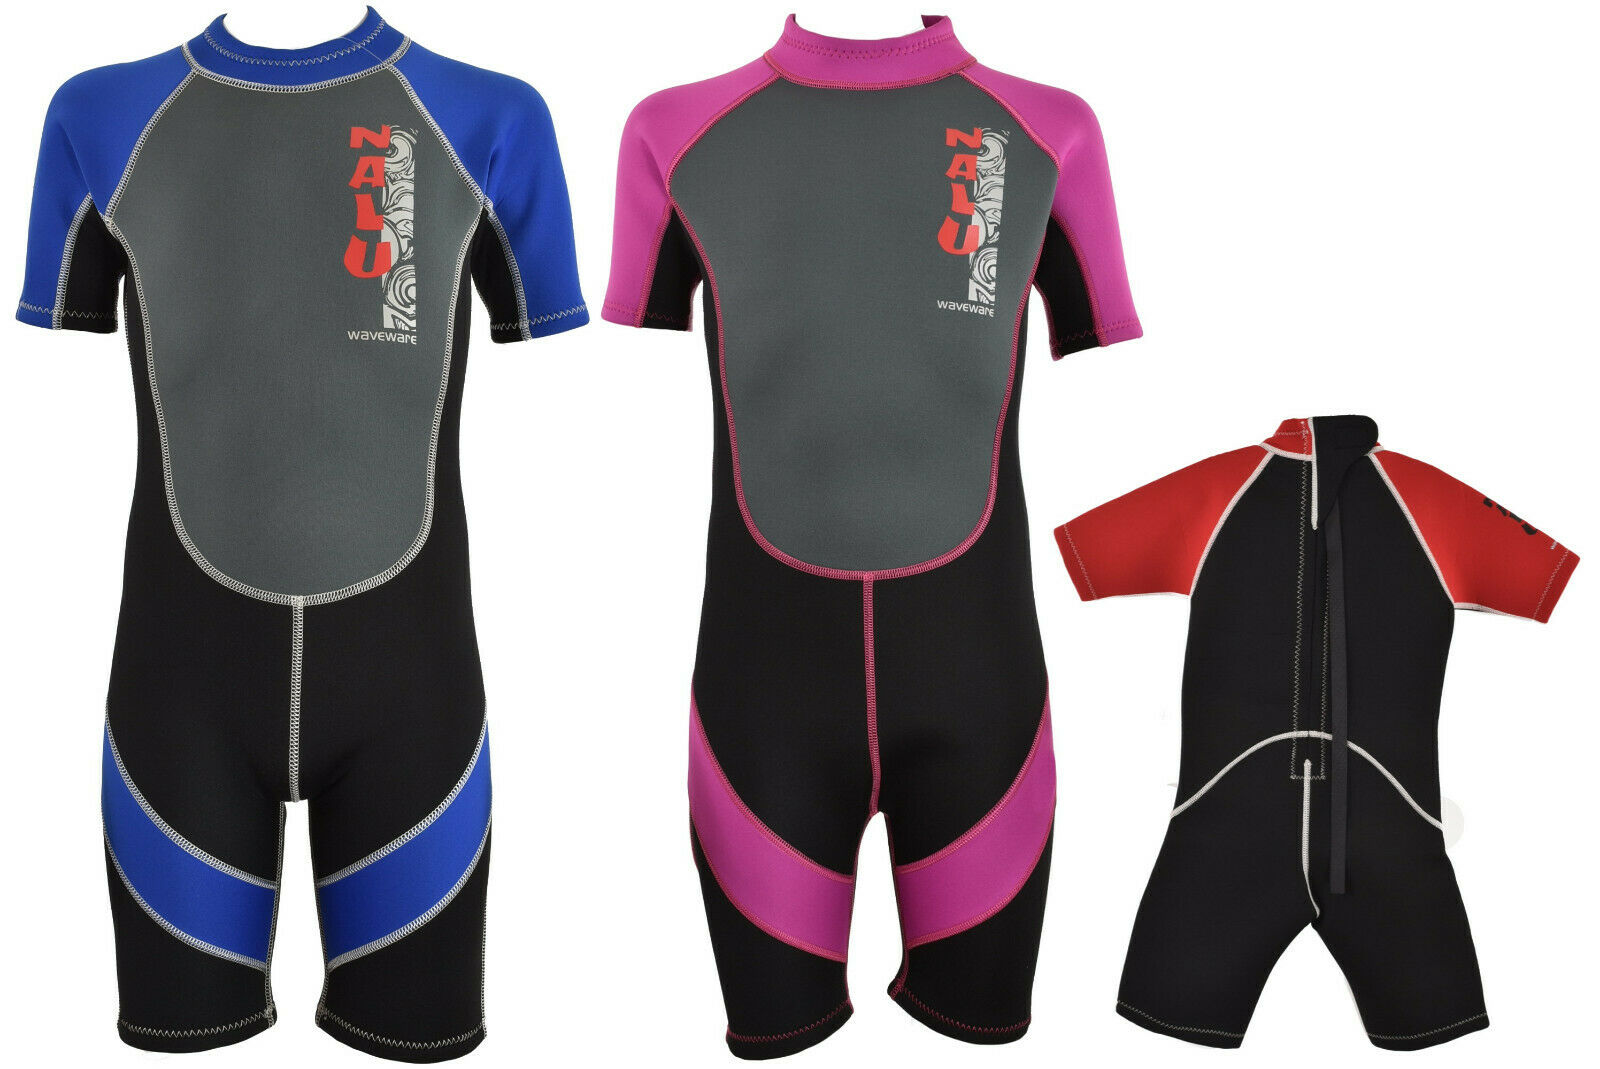 d58fe0e30f Kids Childrens Pink Nalu Wetsuit Size 24 Chest for sale online